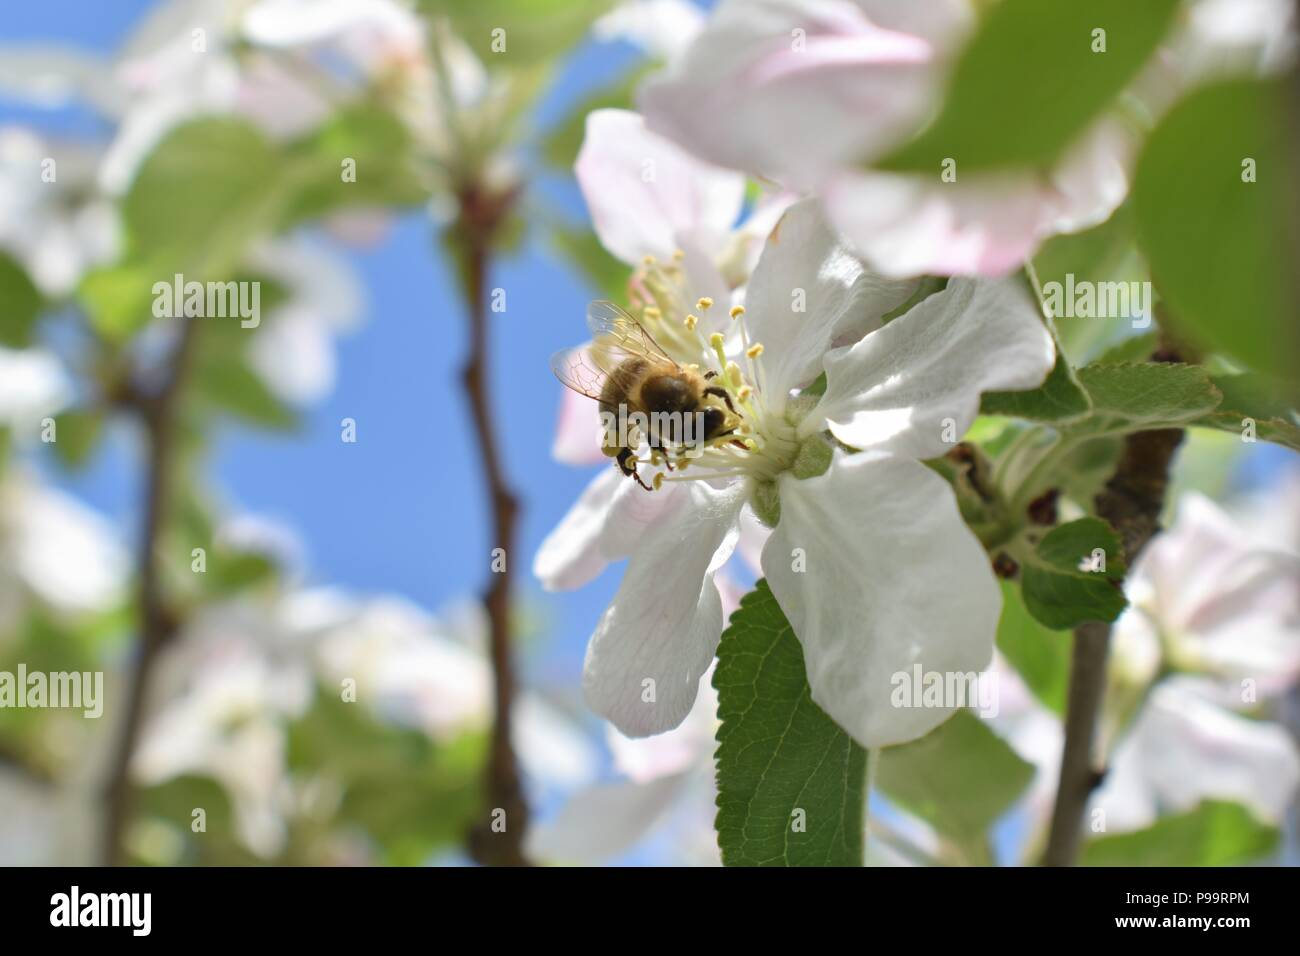 Honey Bee Macro in Springtime, white apple blossom flowers close up, bee collects pollen and nectar. Apple tree buds, spring background in South Jorda - Stock Image